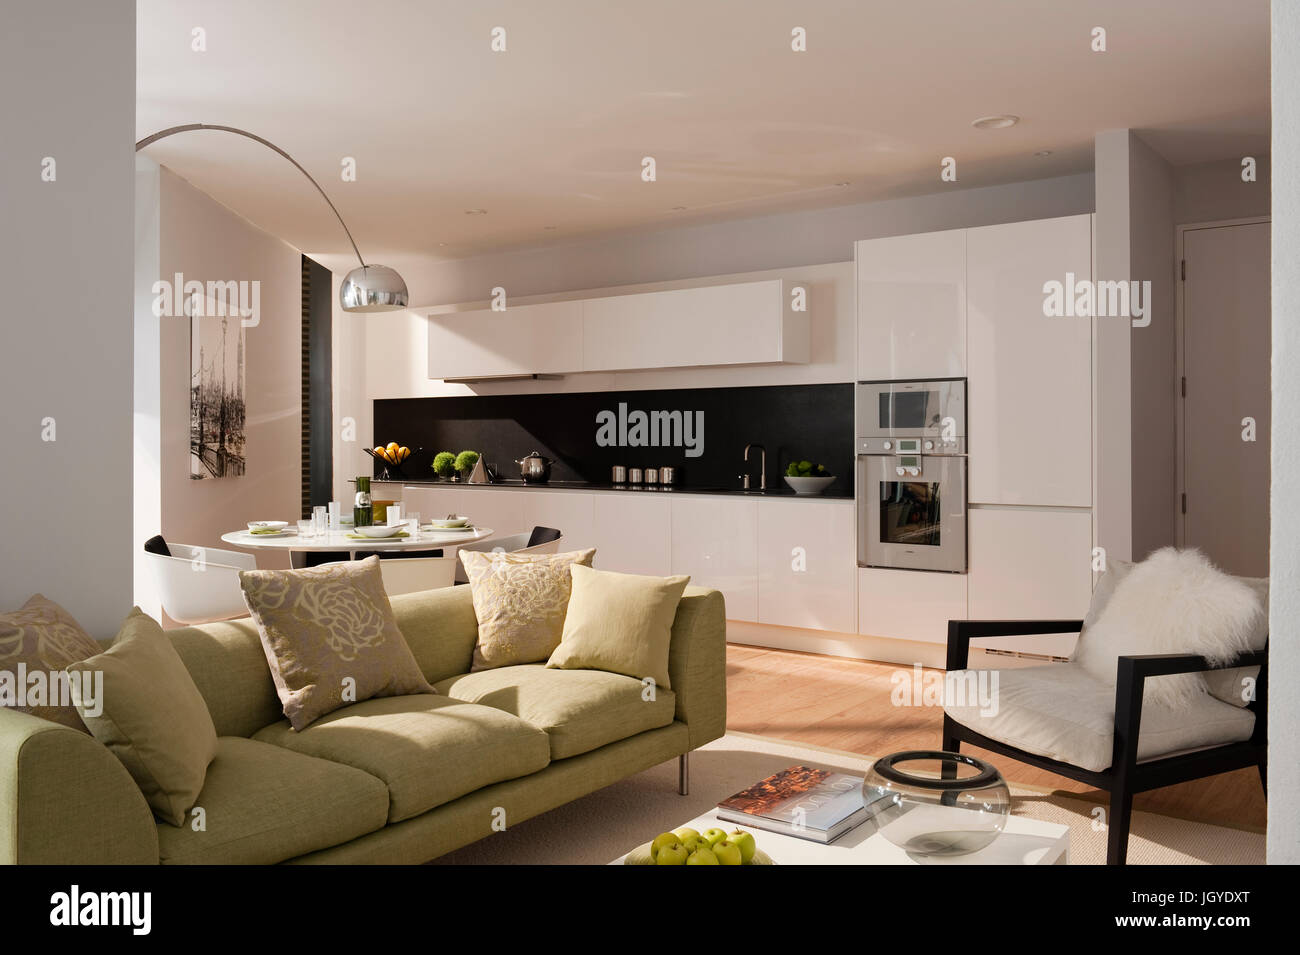 Kitchen Sofa High Resolution Stock Photography and Images - Alamy